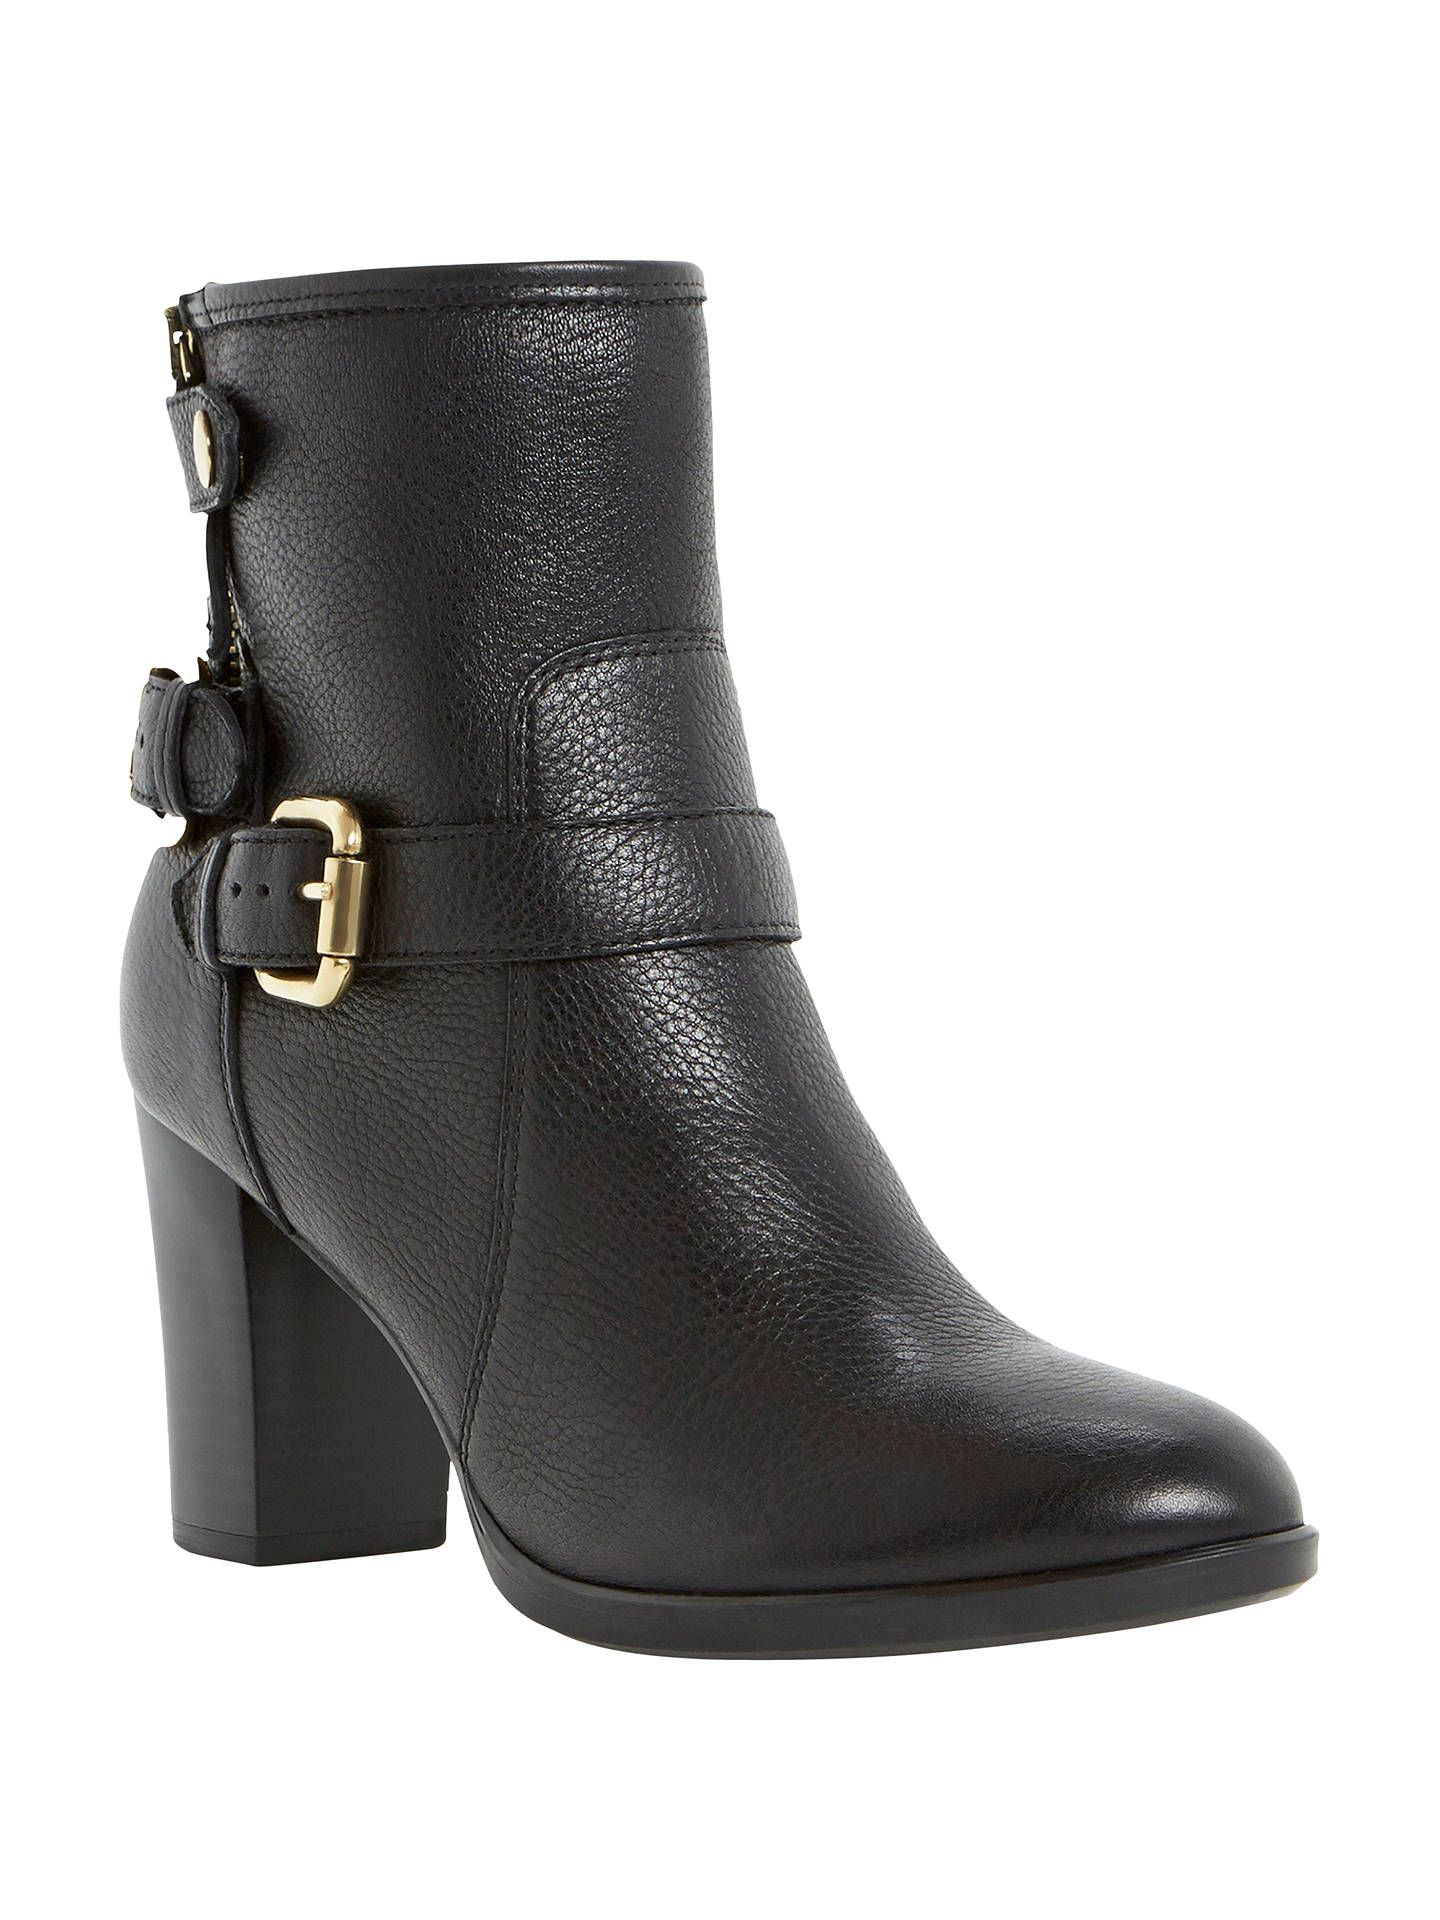 bde01b59cf9 Dune Pyramidd Leather Block Heeled Buckle Trim Ankle Boots at John ...